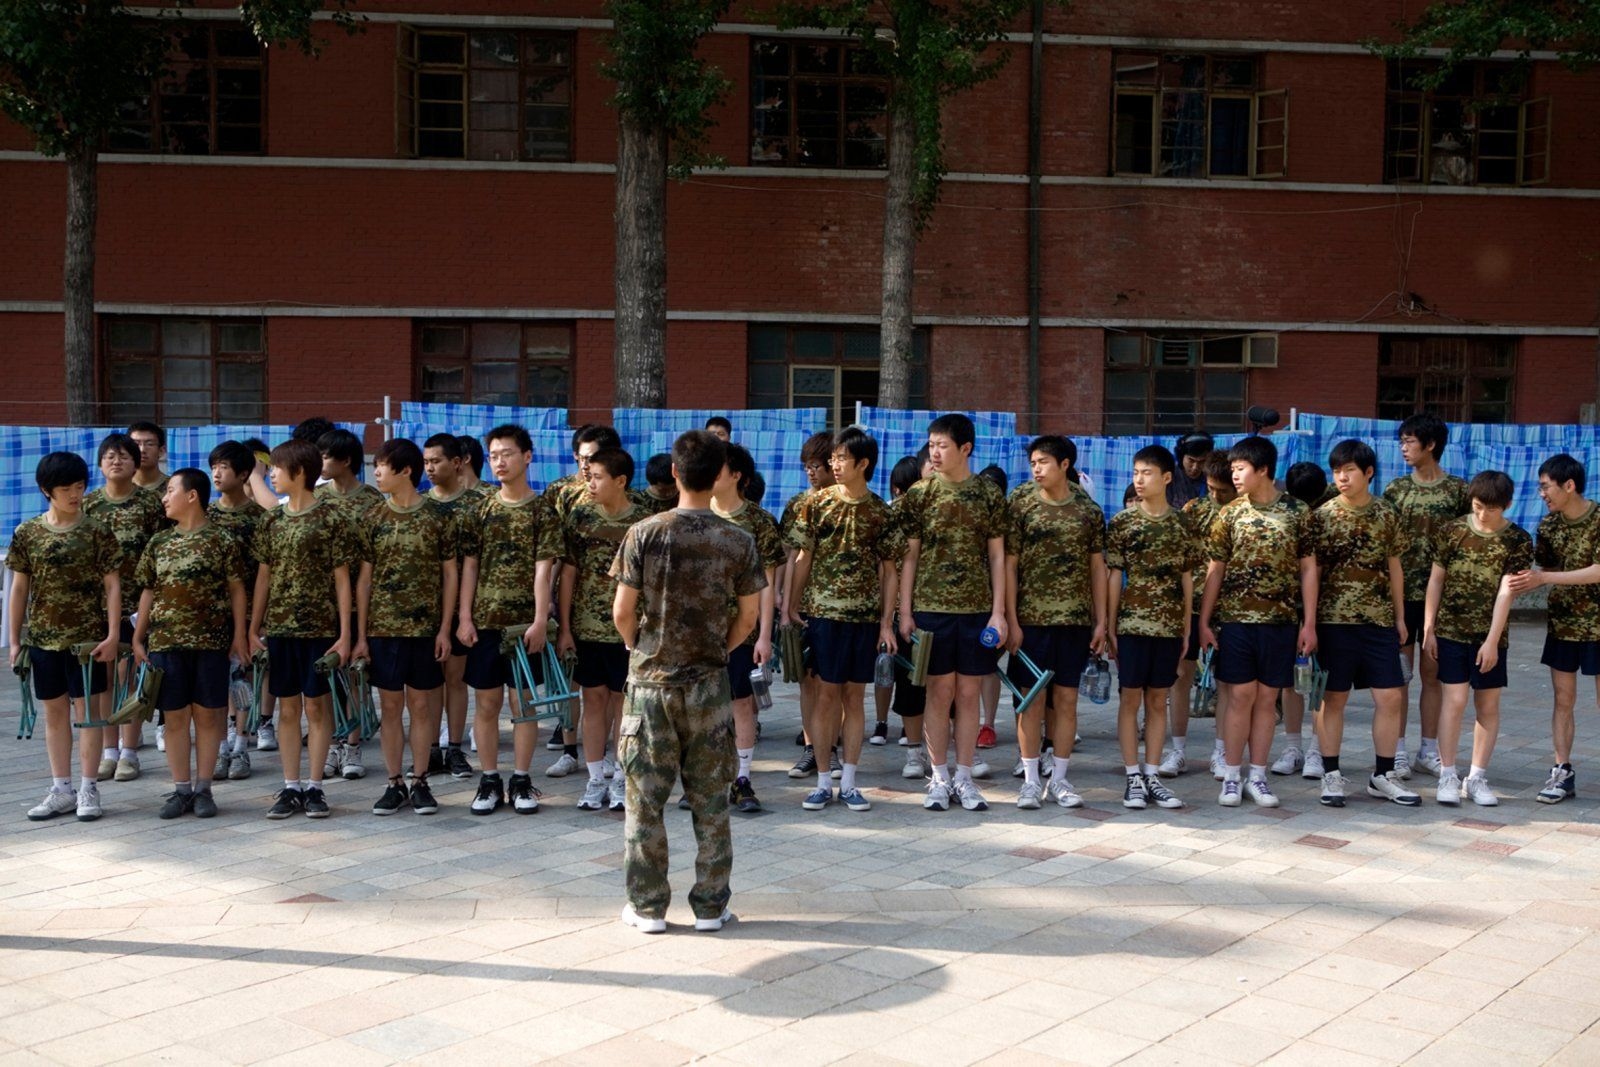 China has secret military-style boot camps for Internet addicts.